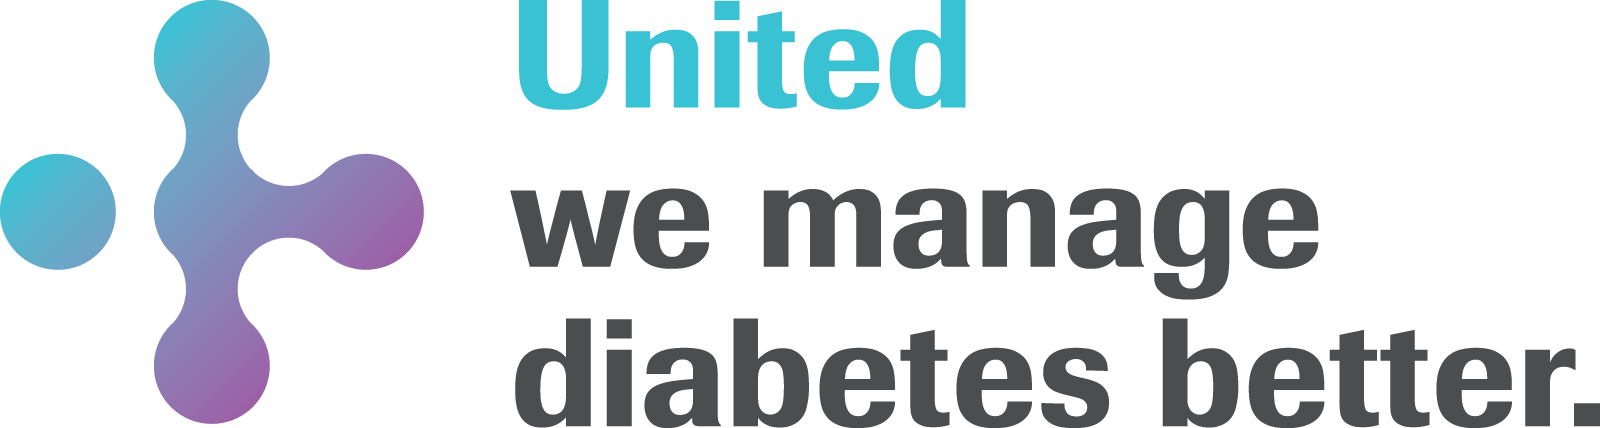 United we manage diabetes better.